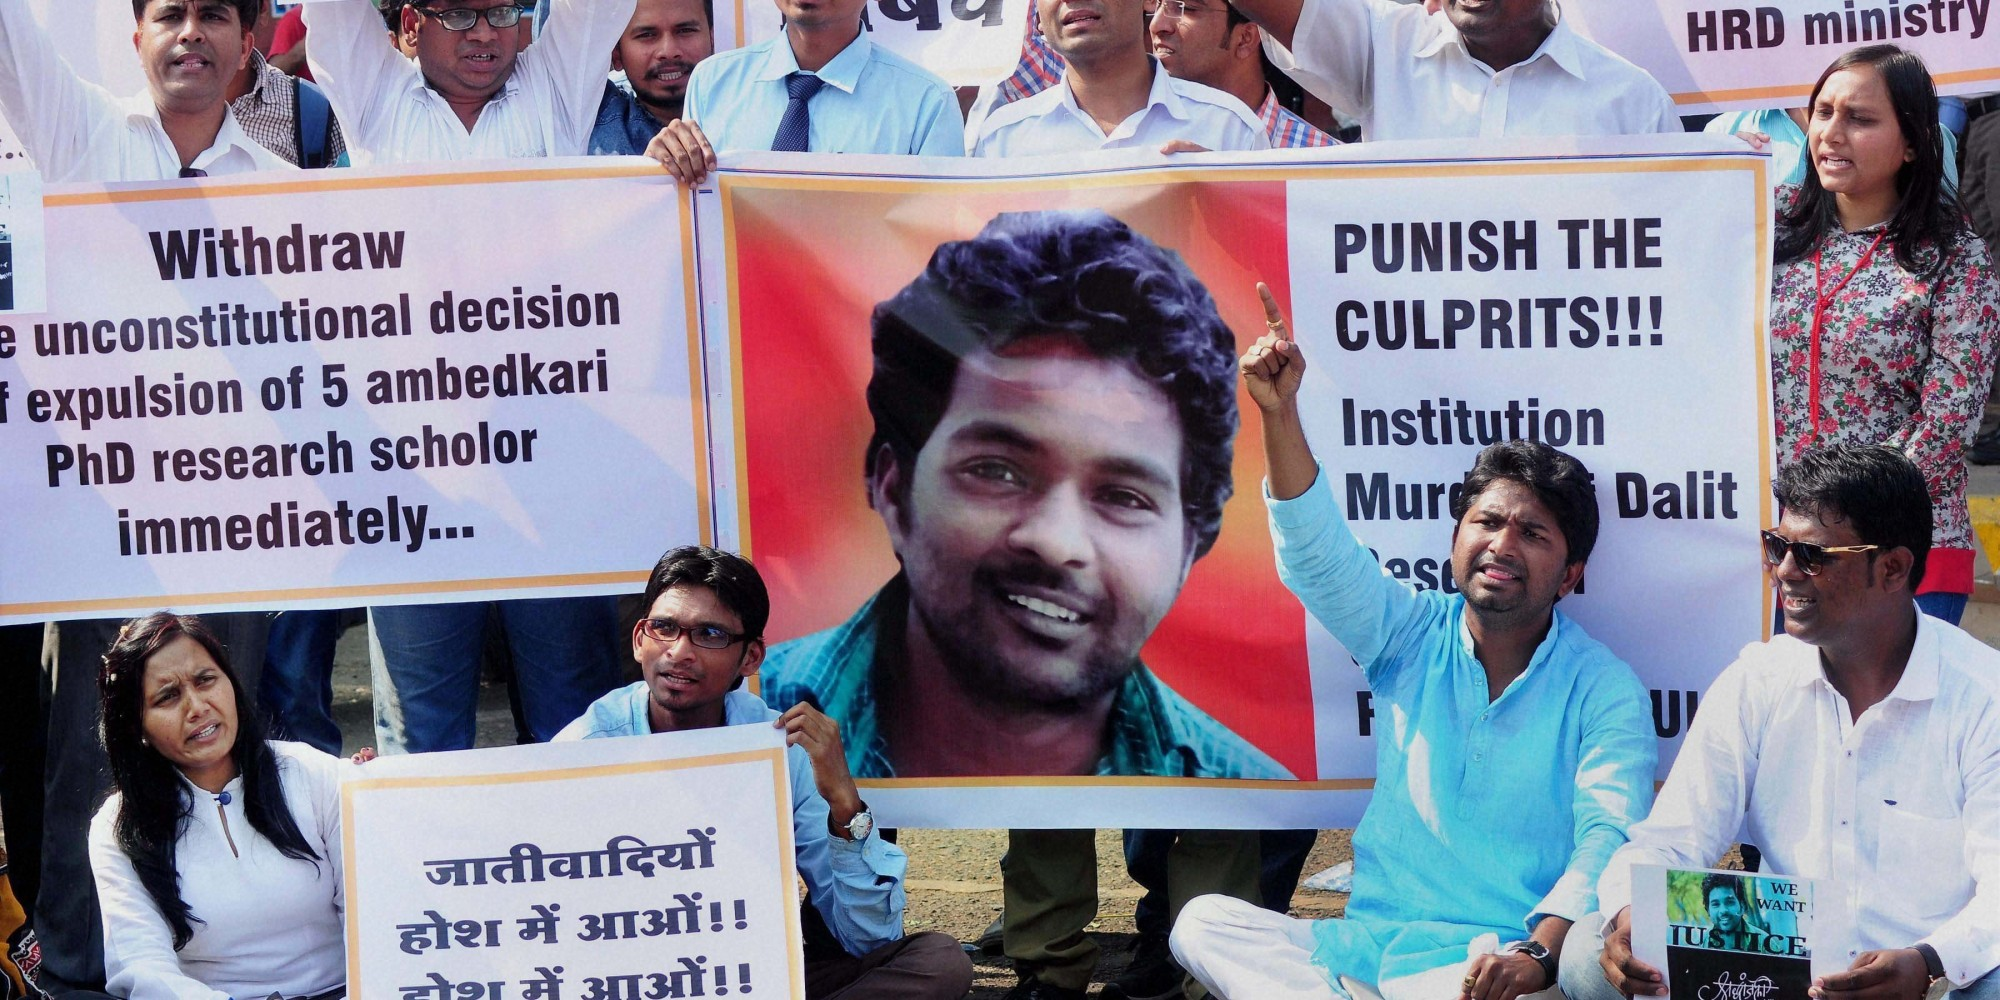 Rohith Vemula: Caste discrimination in India cases